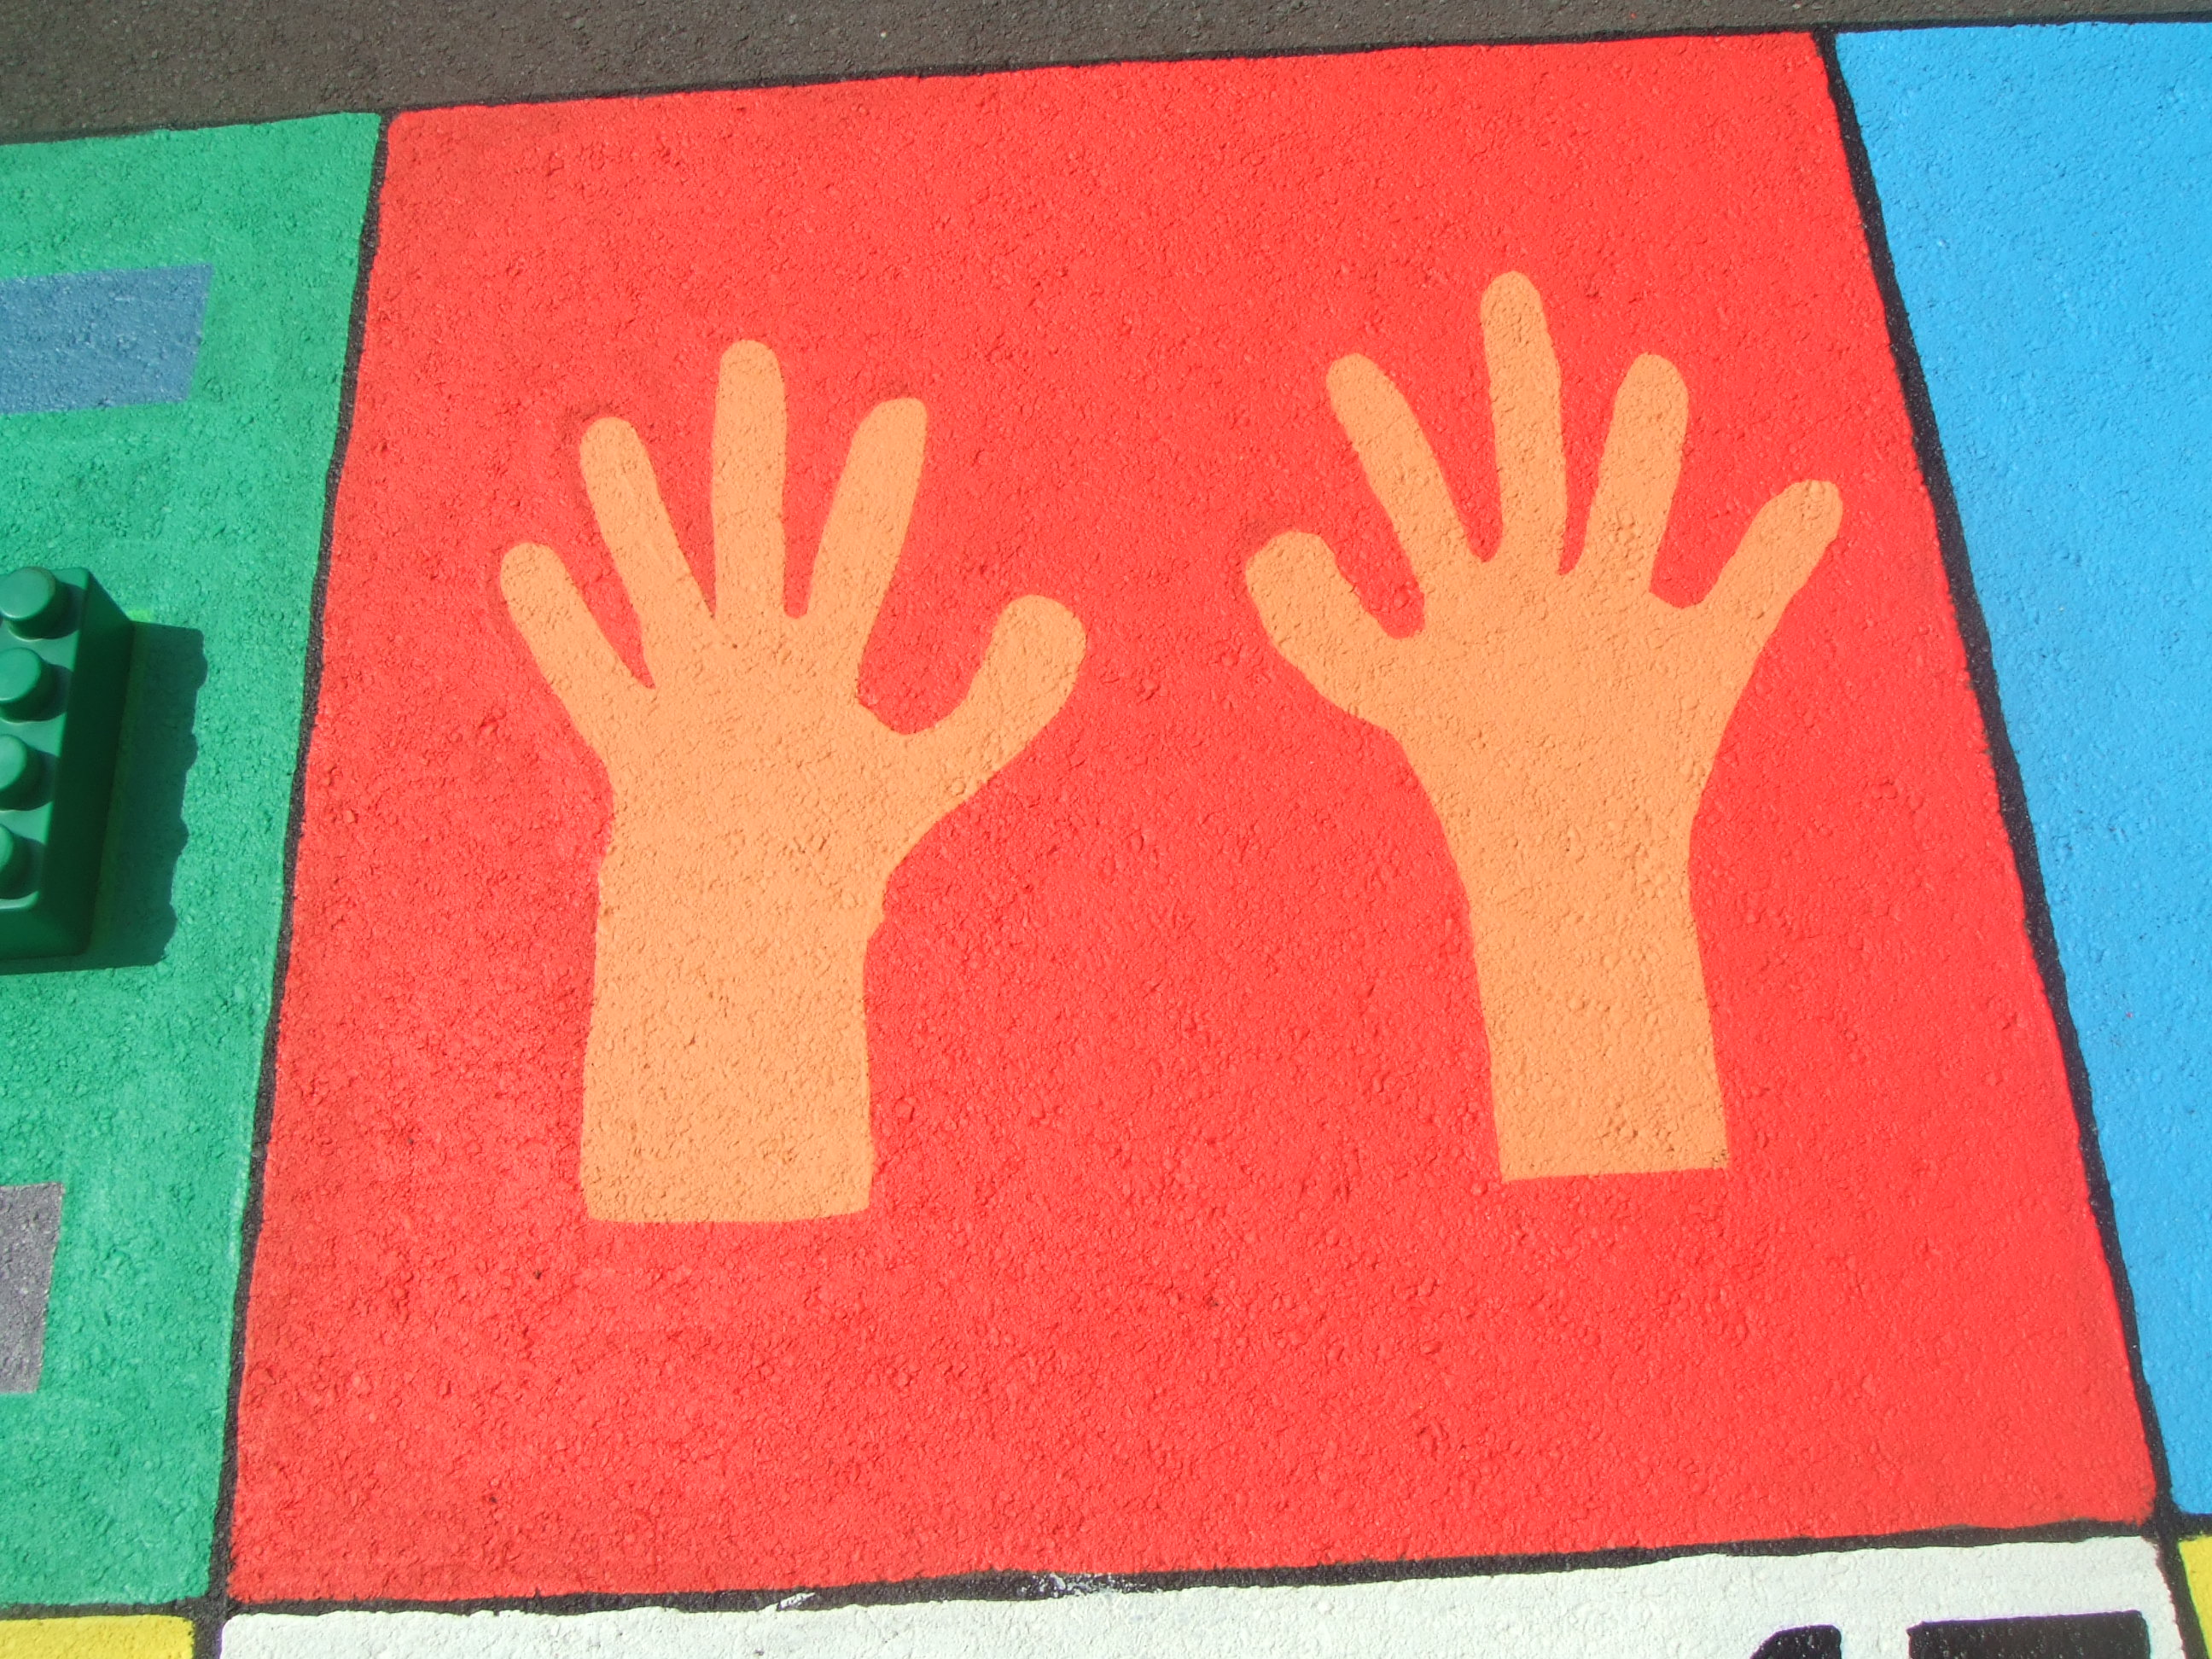 24. TWO HANDS